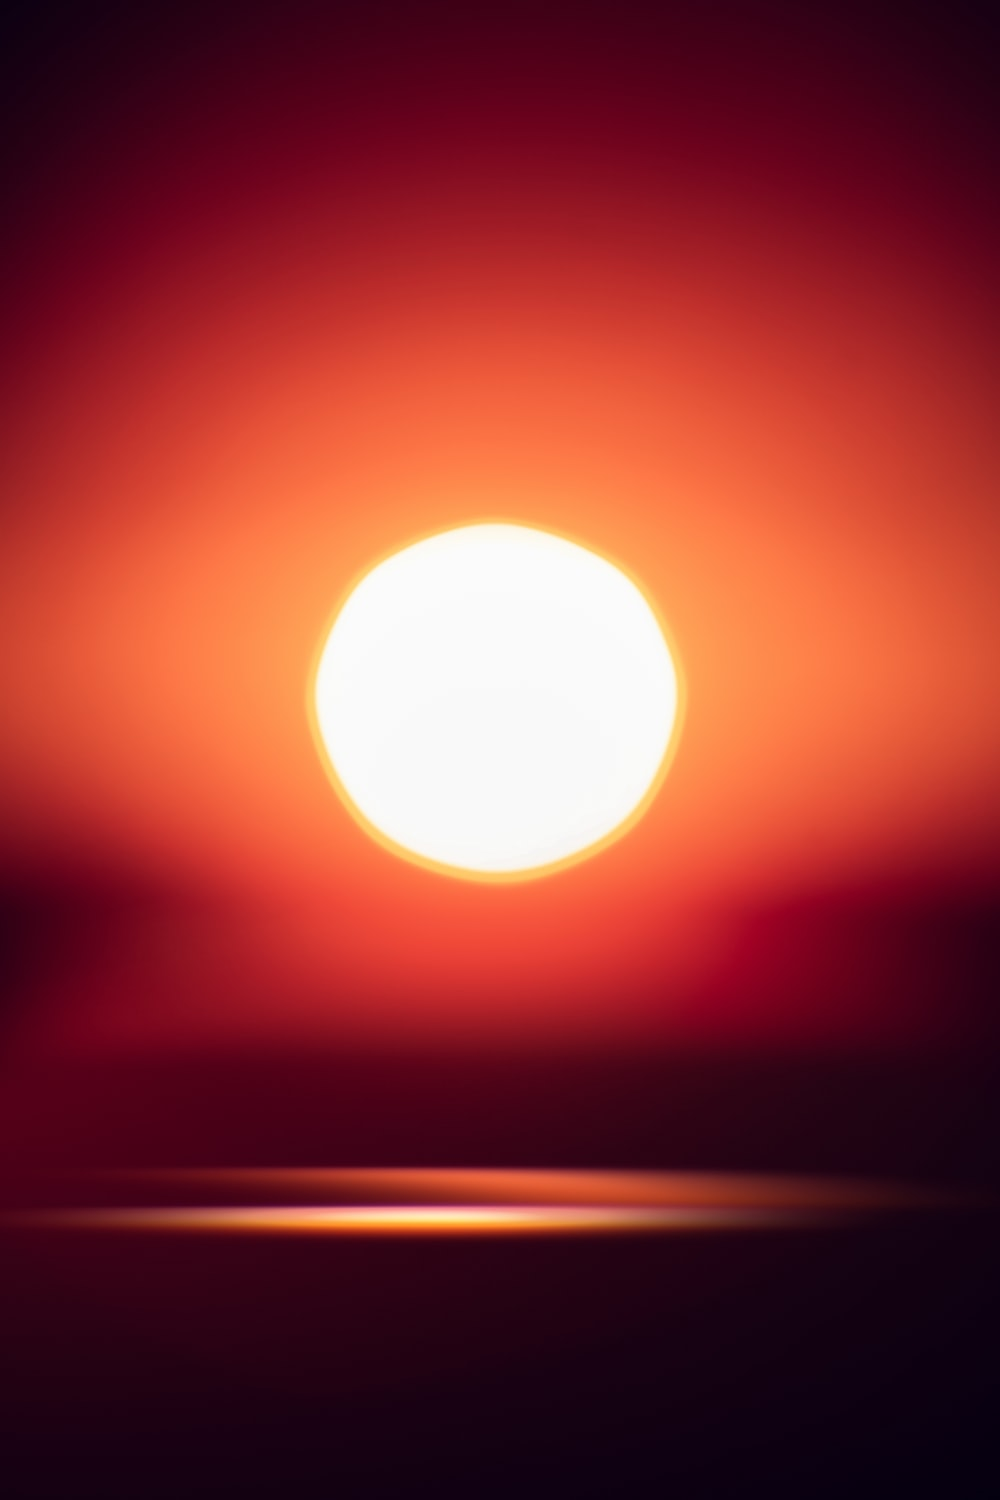 sun in the sky during sunset